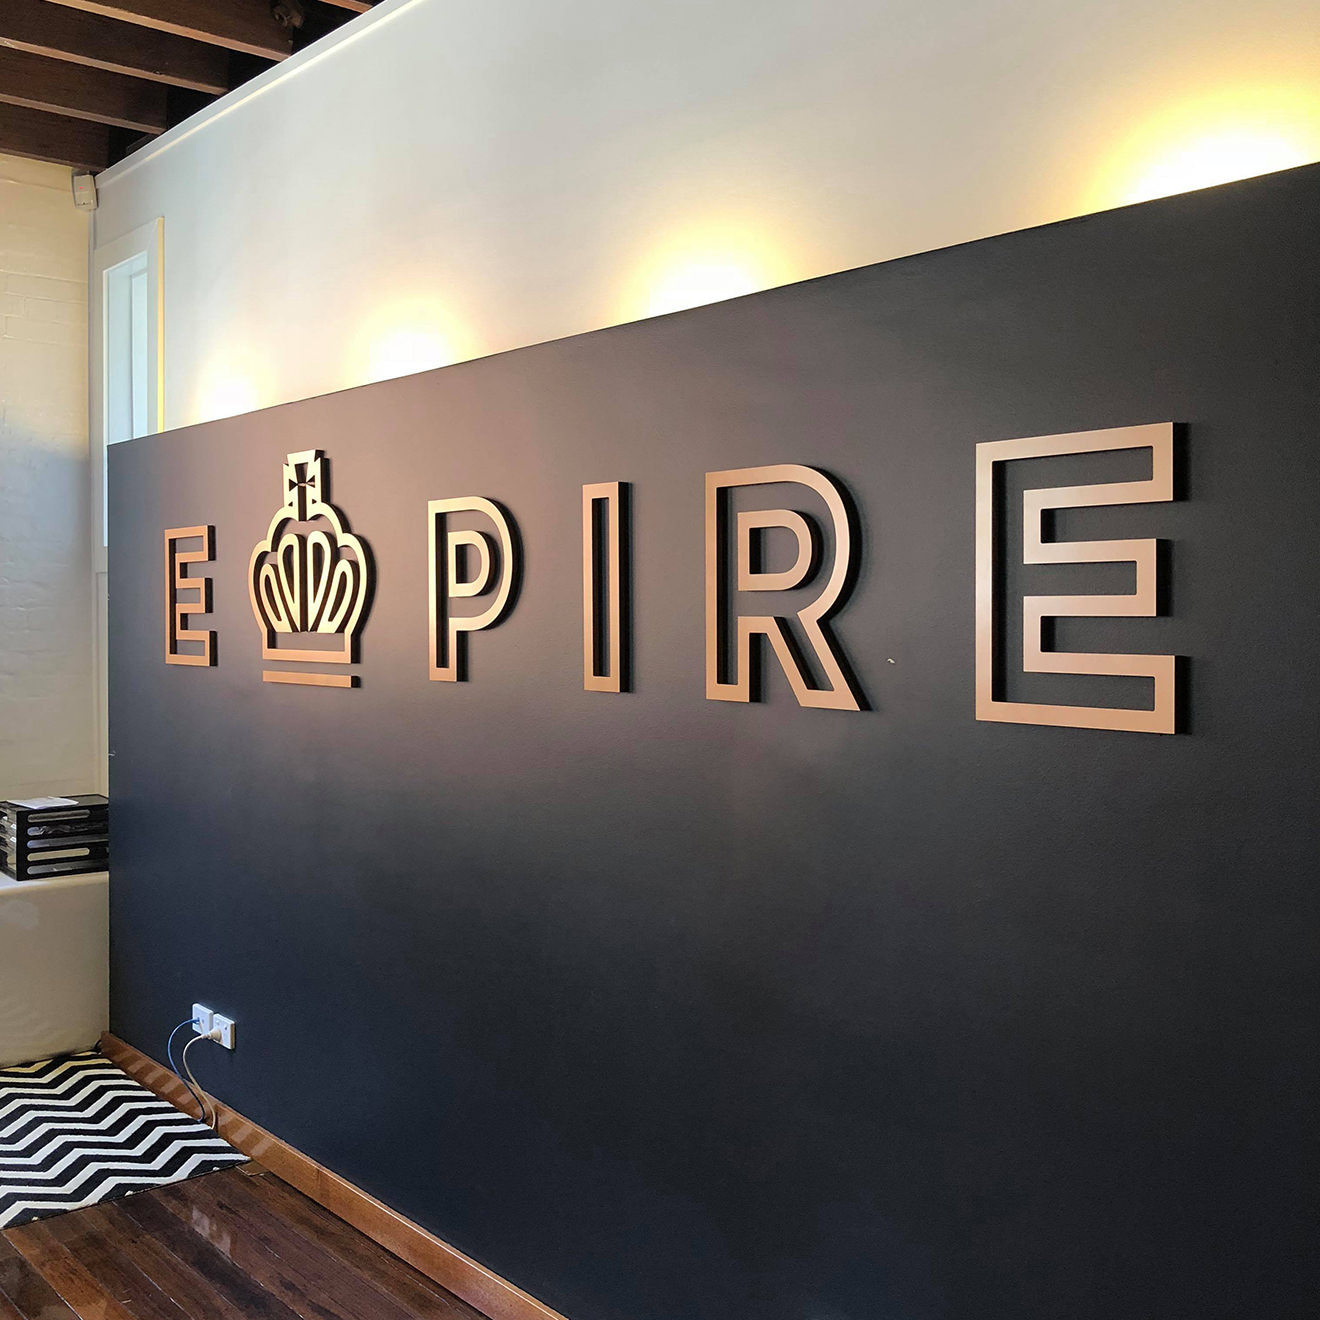 The EMPIRE bronze logo atop a black dividing wall in an office